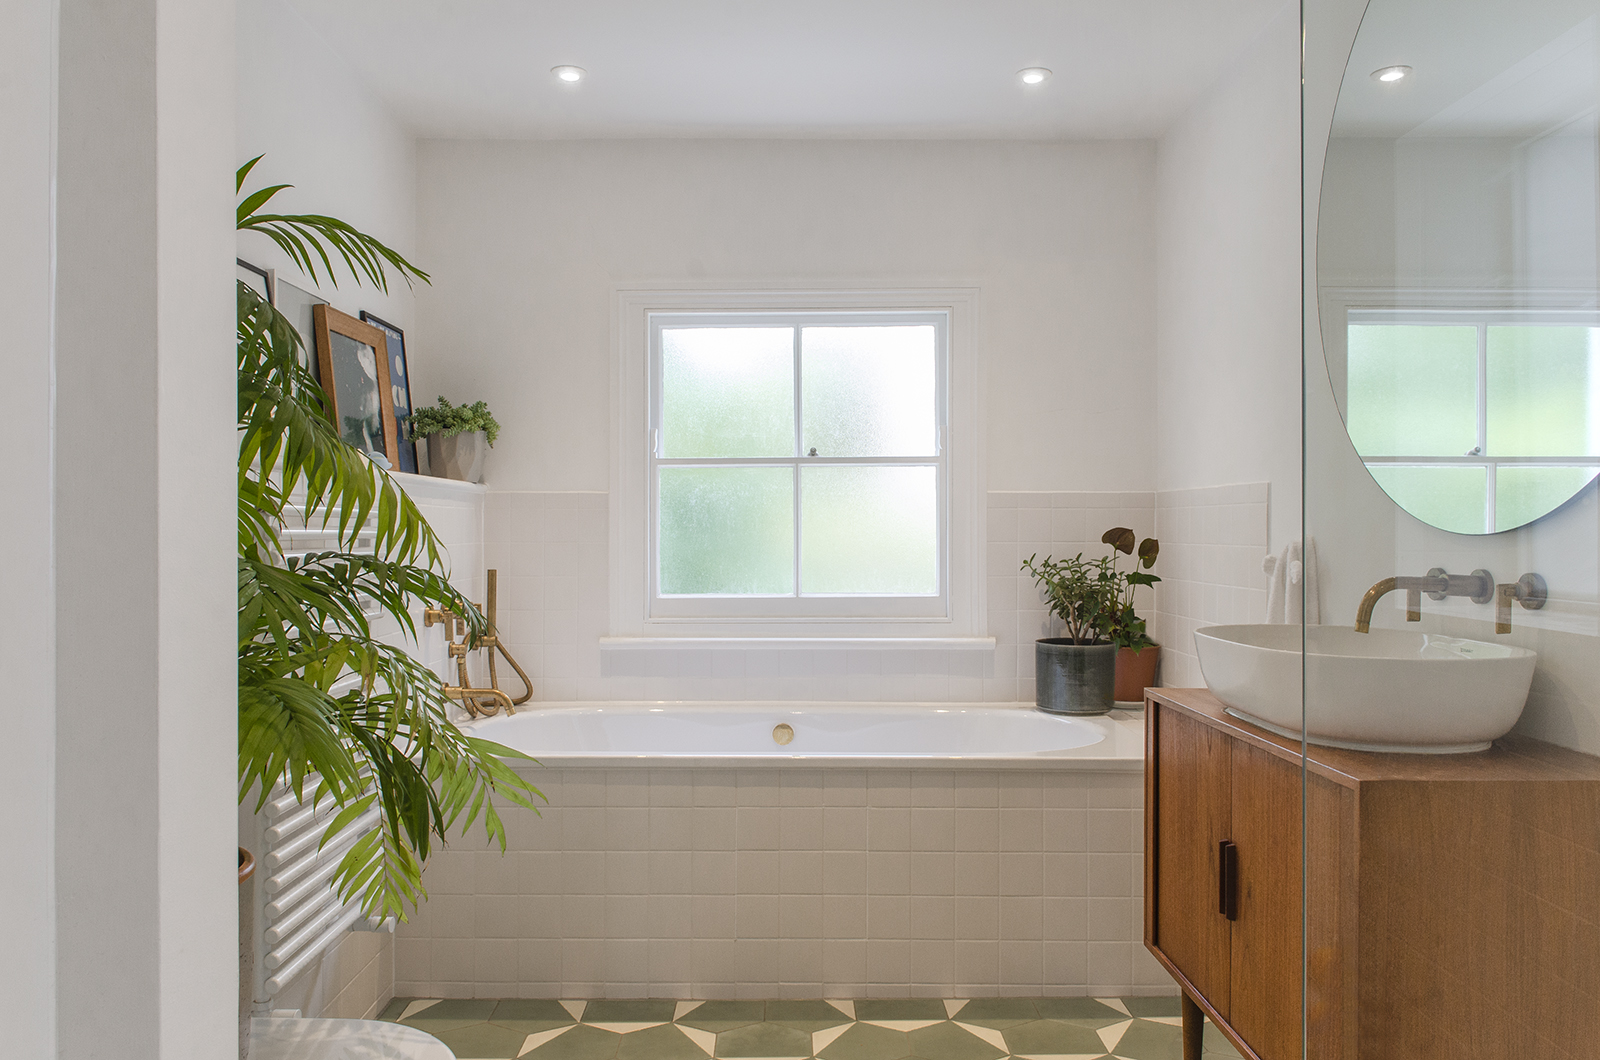 Projects_Office_Southgate Road_Bathroom.jpg